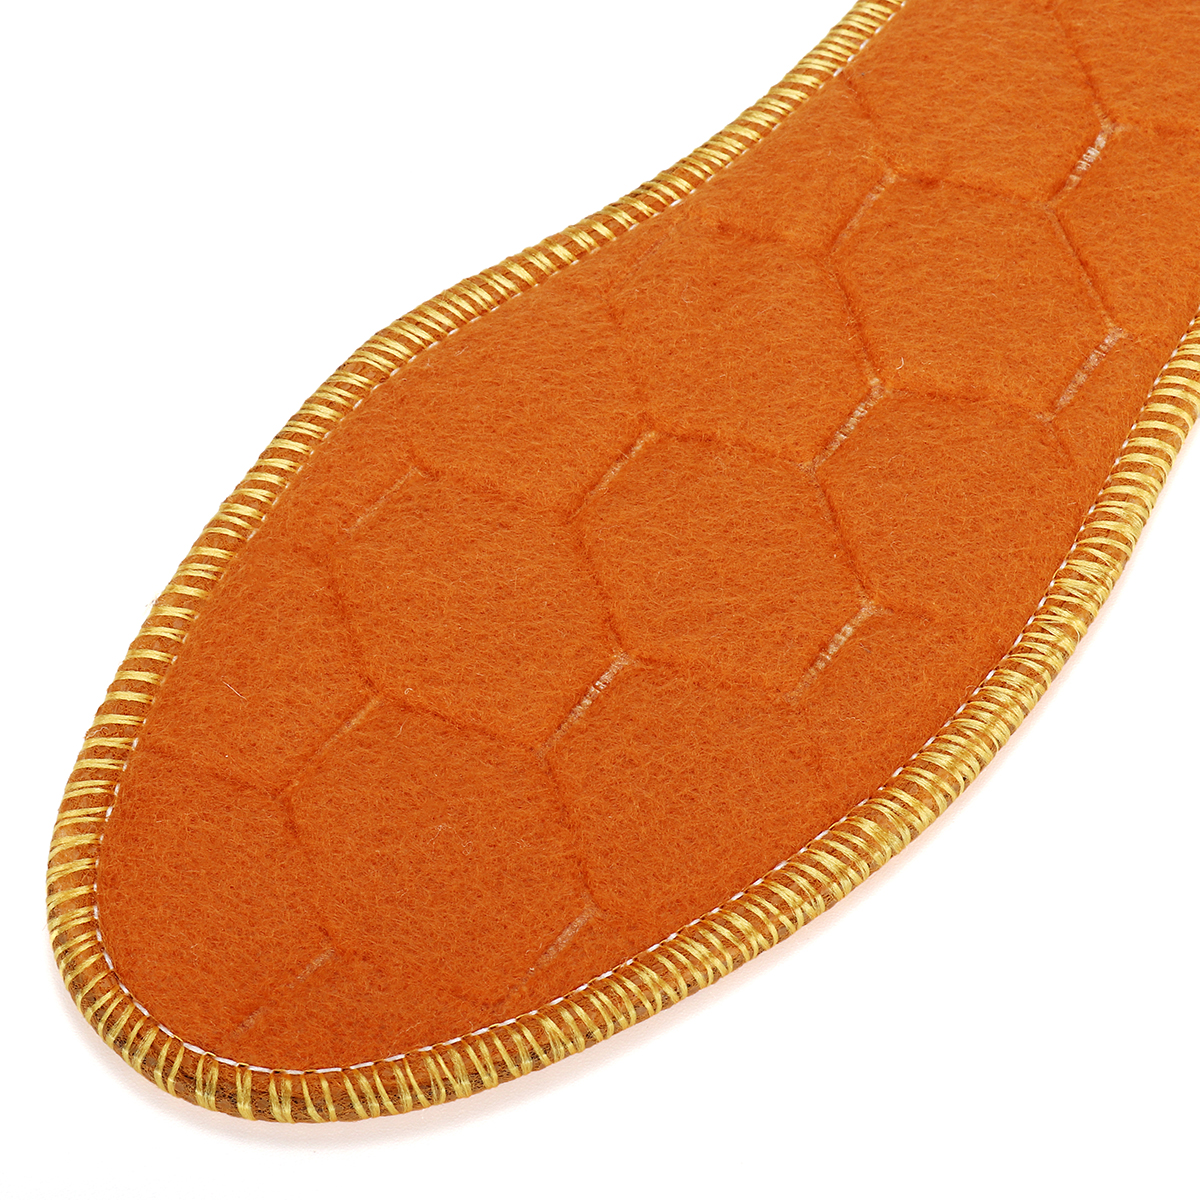 36-45 Winter Thermal Insole Carbon & Plush Shoes Boots Inner Soles Pads Warmer